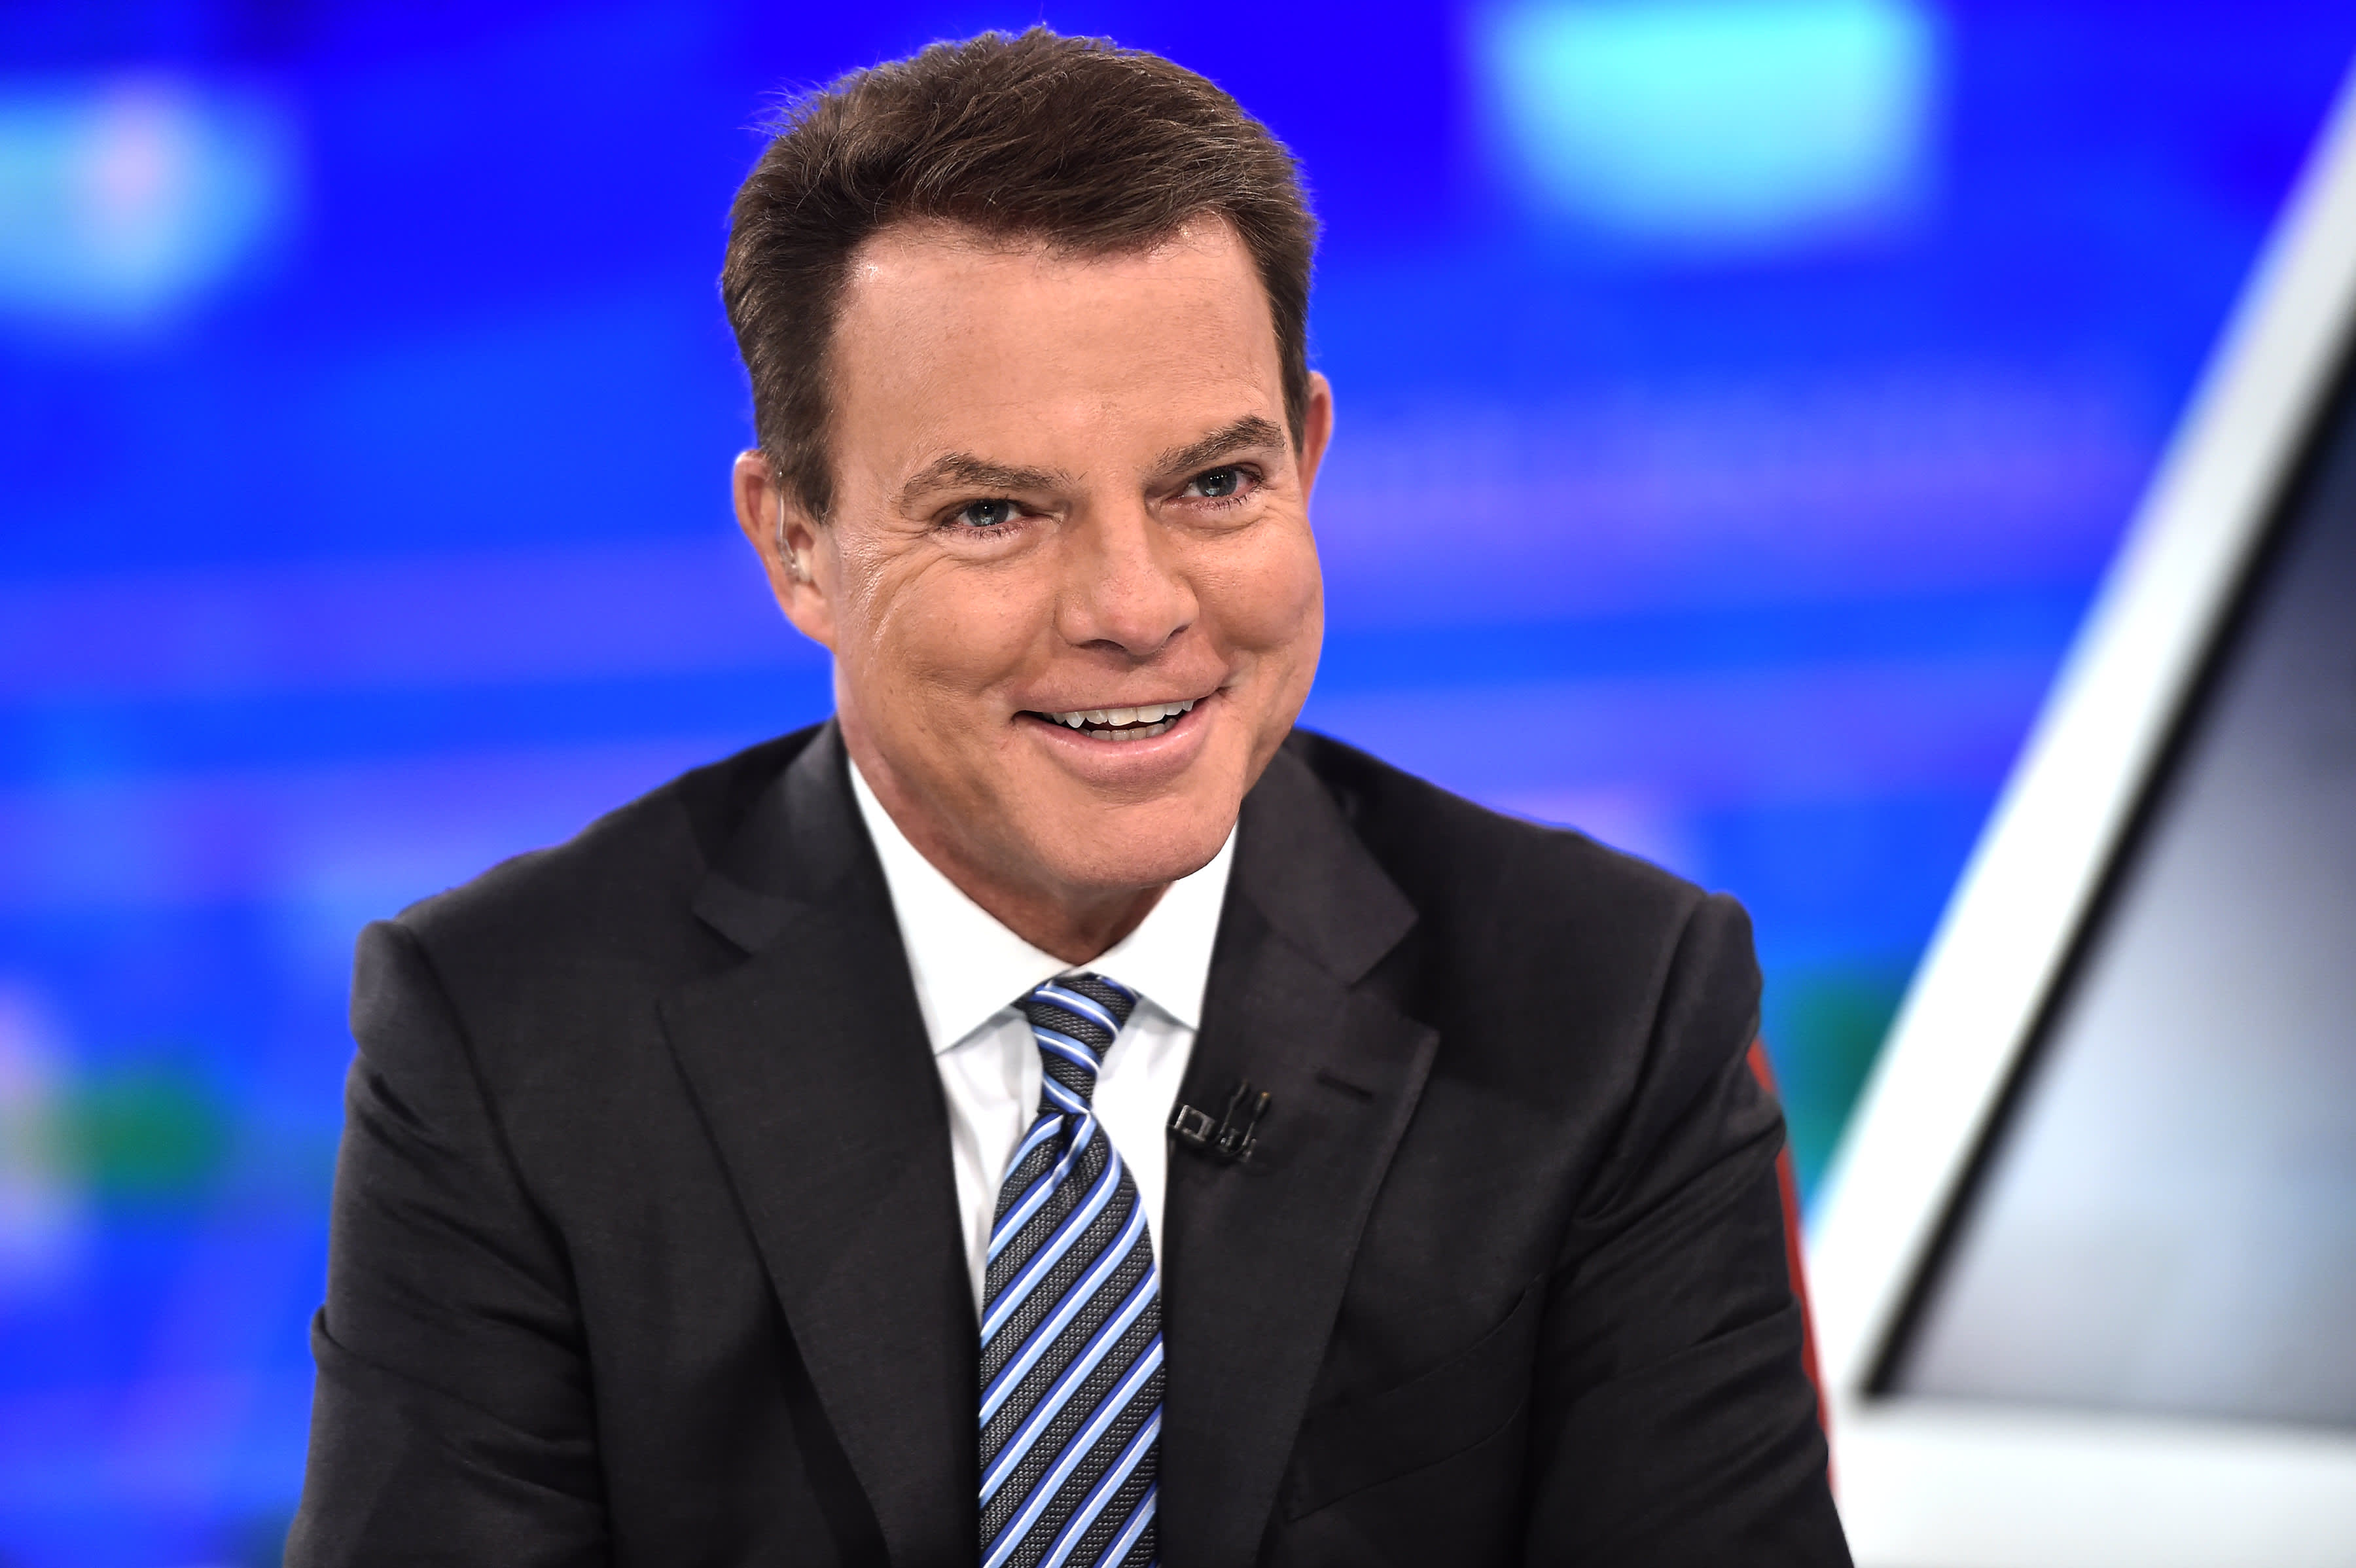 Former Fox News anchor Shepard Smith joins CNBC with new evening show 10